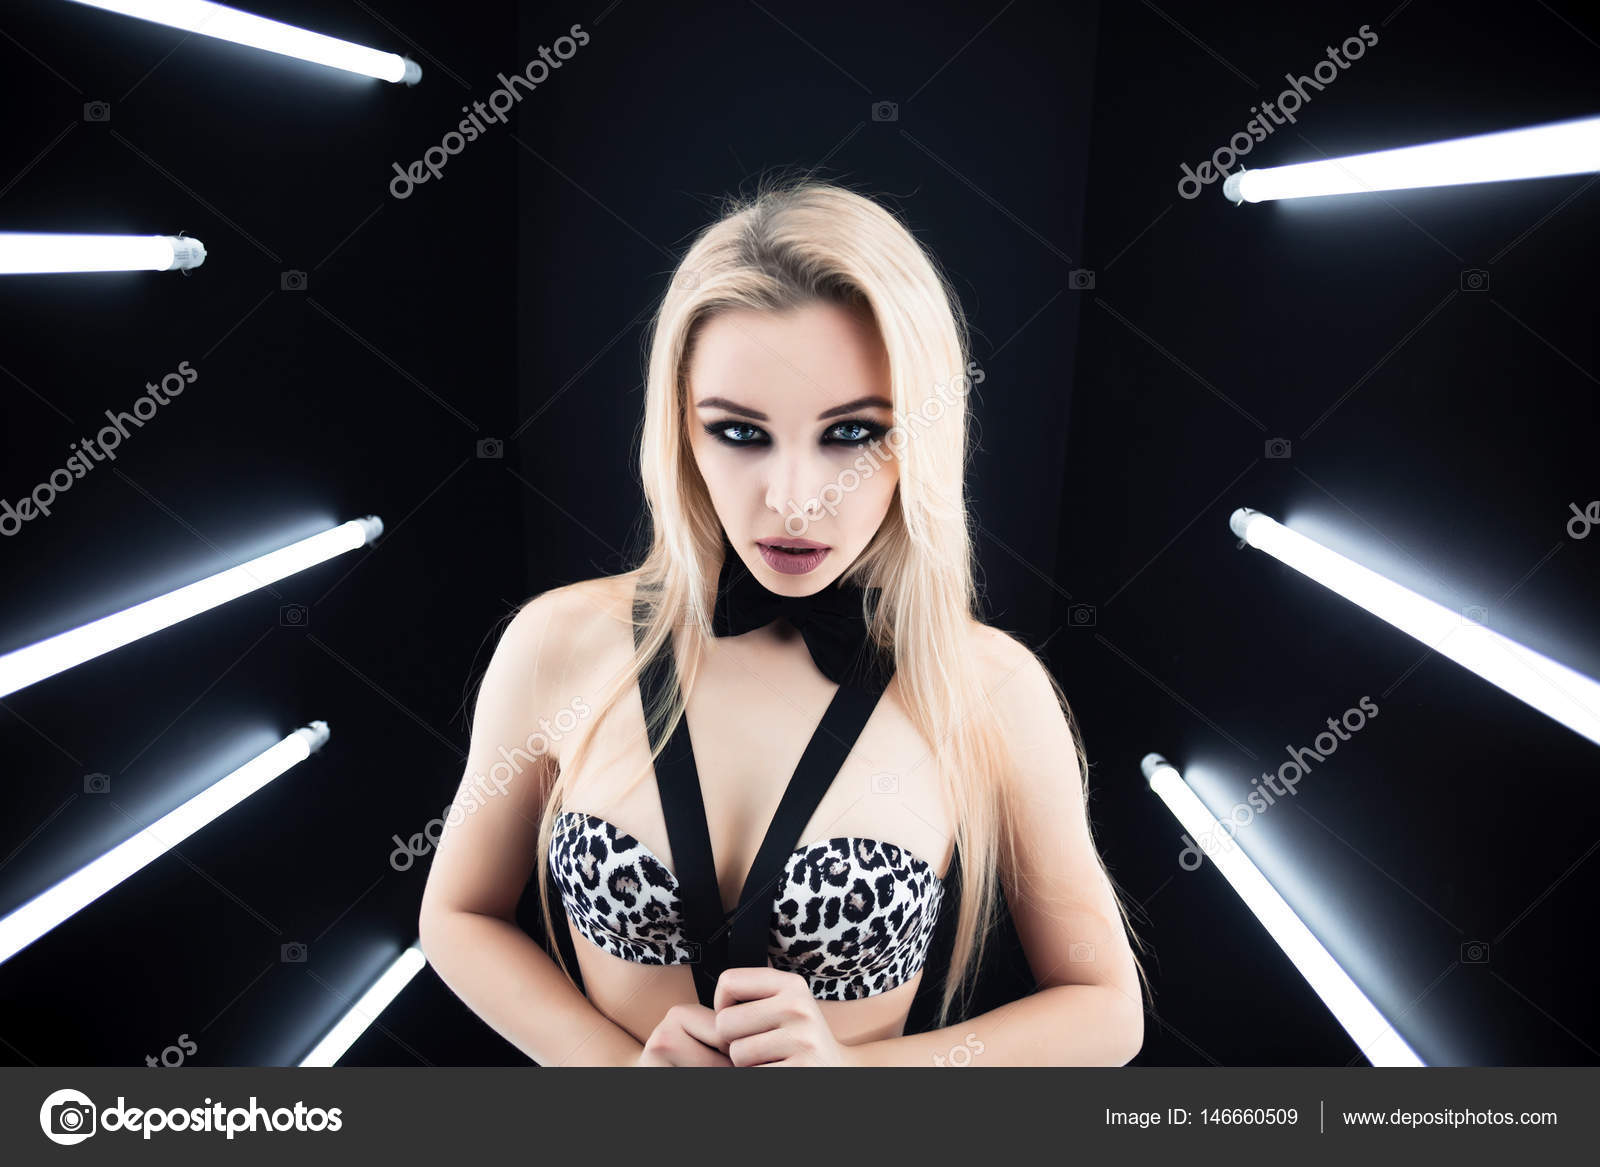 dbef737ce Beautiful sexy blonde woman on black background.Close up fashion portrait  of Beautiful alluring young woman in sexy lingerie.Wears sensual clothes  and ...